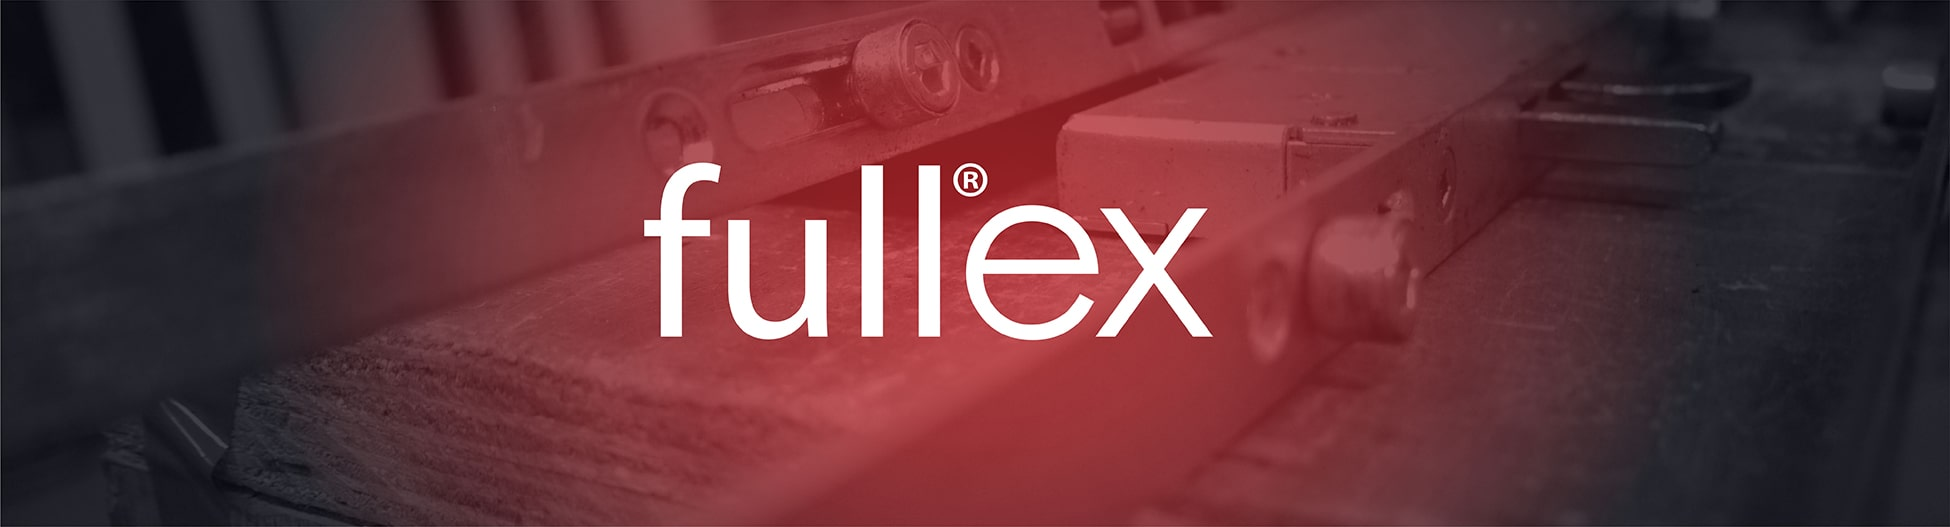 Fullex - UAP Ltd - Door Hardware and Security Products